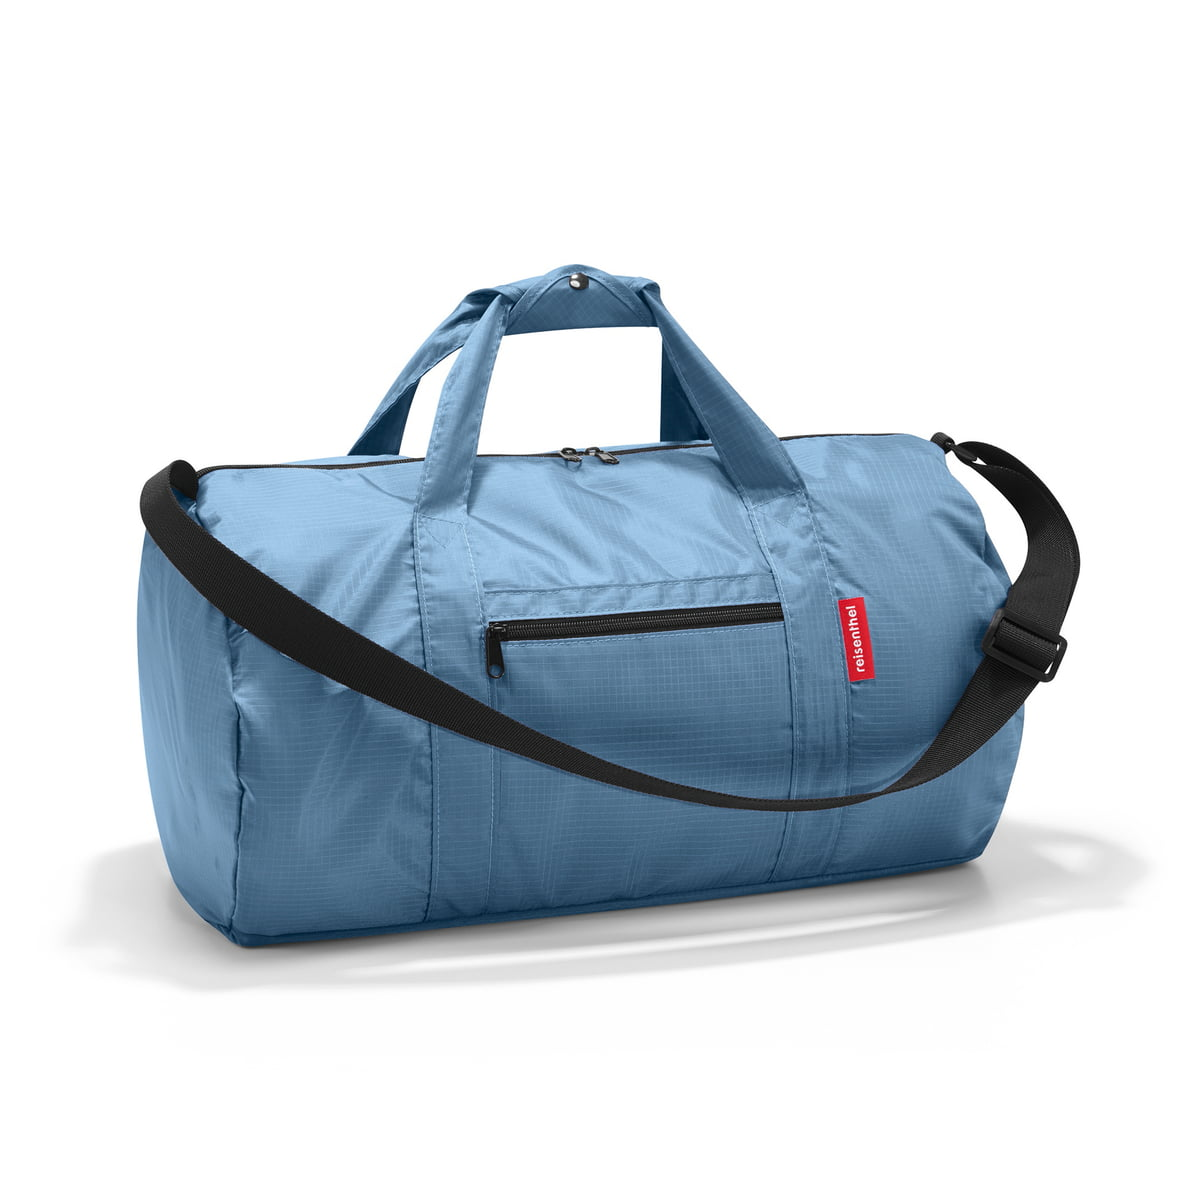 8c902c1a9d Foldable dufflebag by reisenthel in the shop